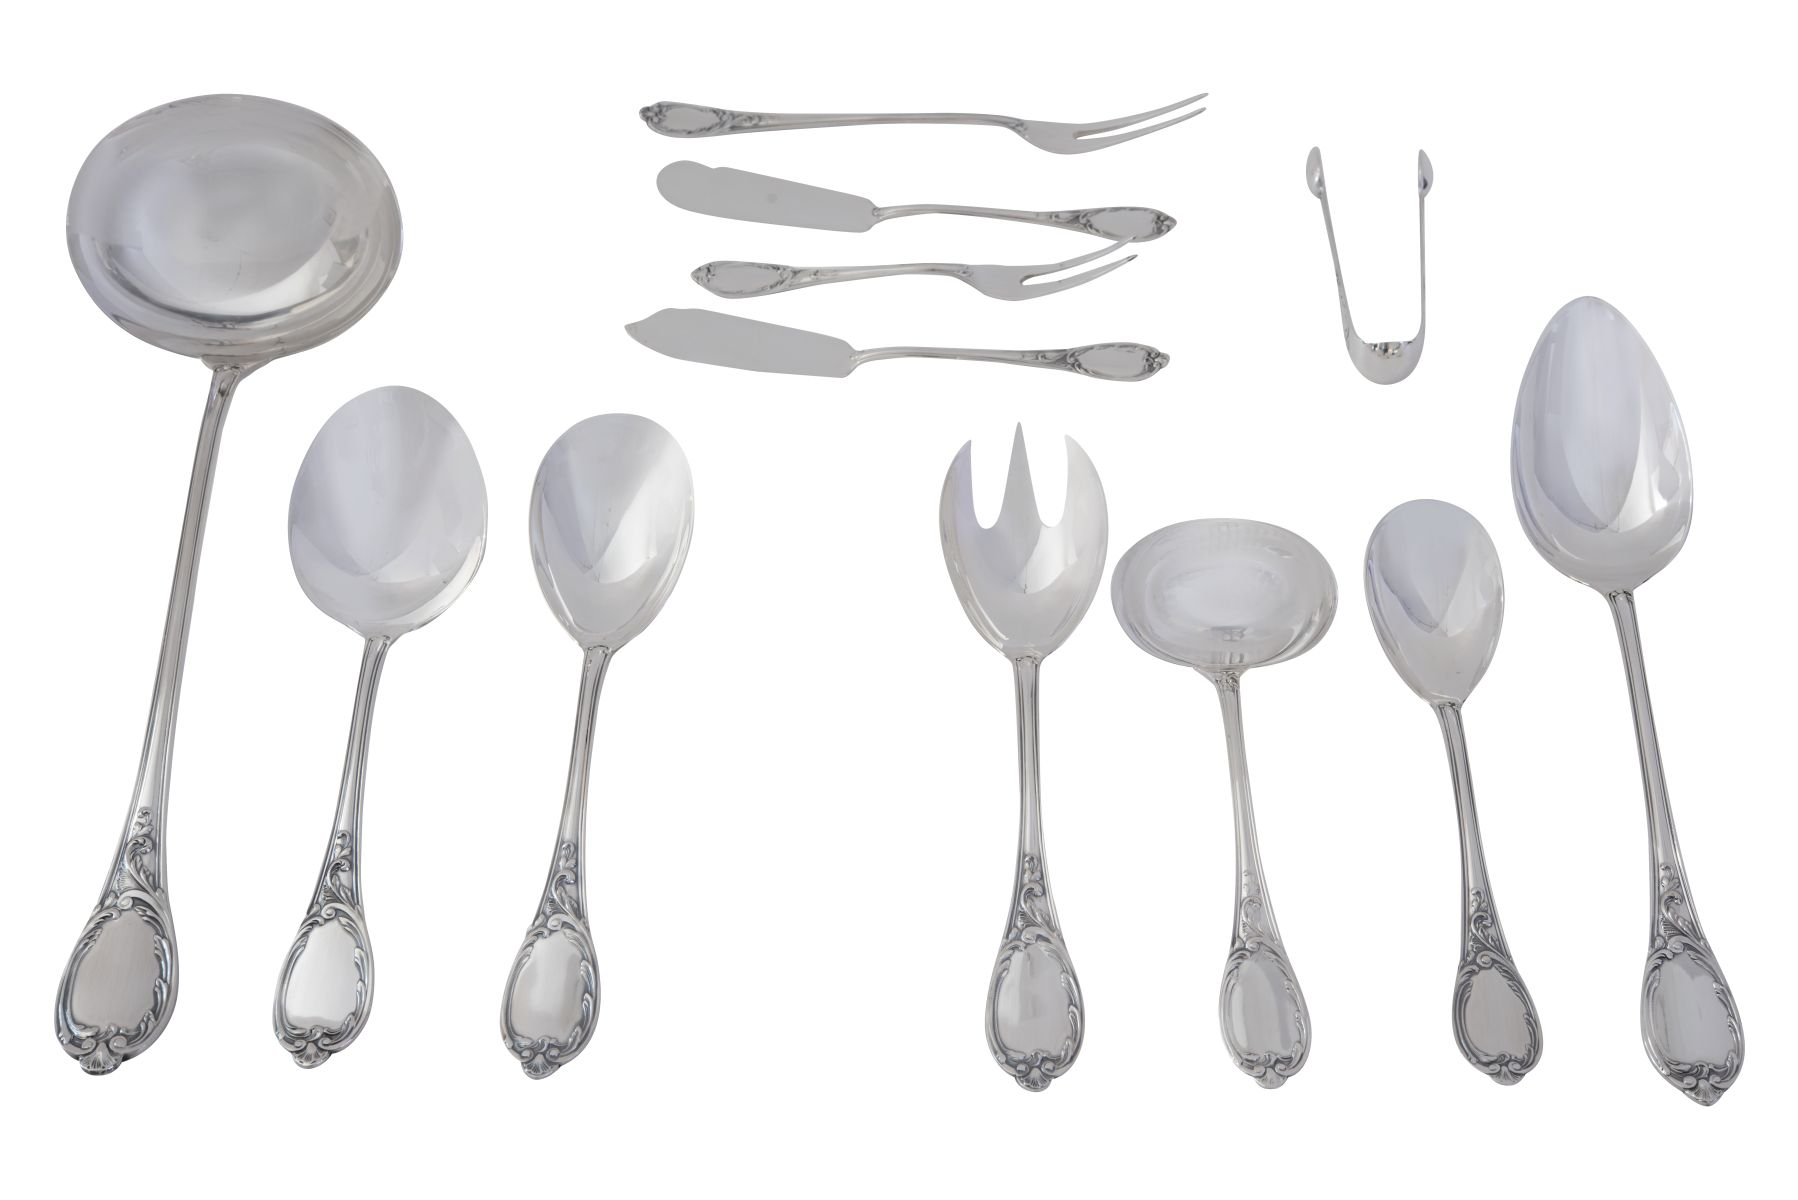 #113 Serving parts for table cutlery Image